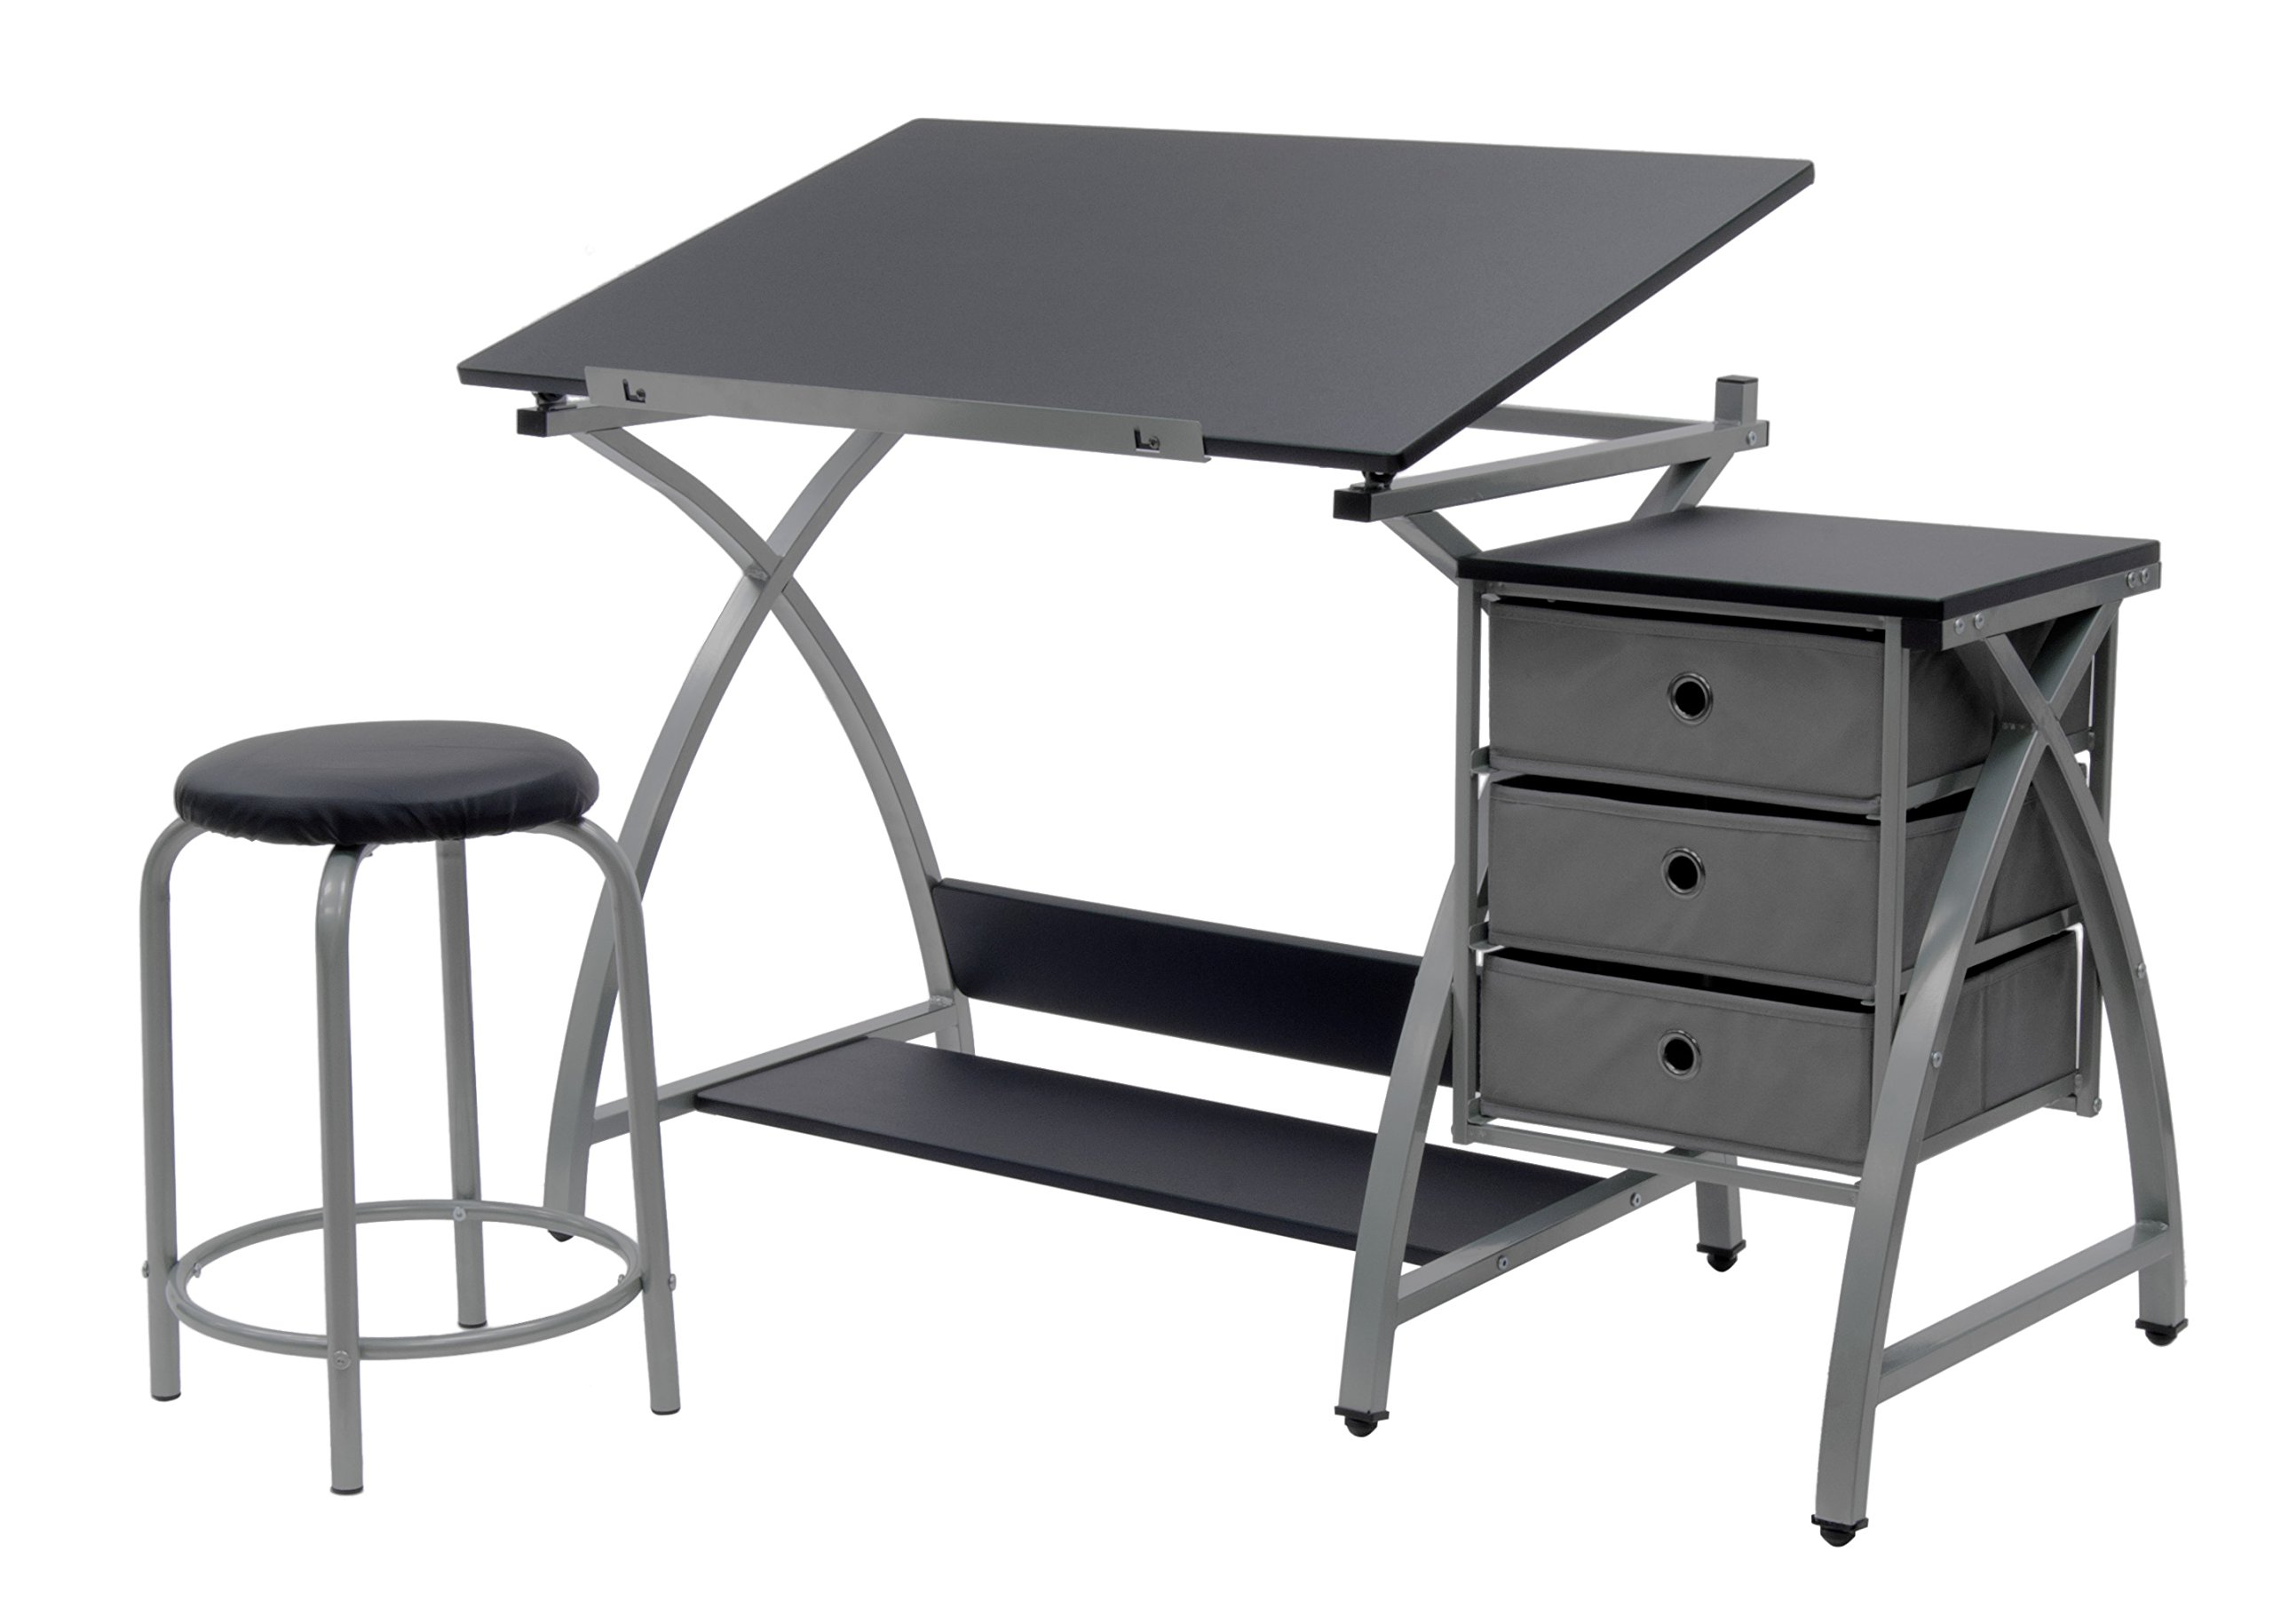 SD Studio Designs Studio Designs 2 Piece Comet Art, Hobby, Drawing, Drafting, Craft Table with 36''W x 23.75''D Angle Adjustable Top and Stool in Silver/Black, Assembled Dimensions: 50'' W x x 29.5'' H